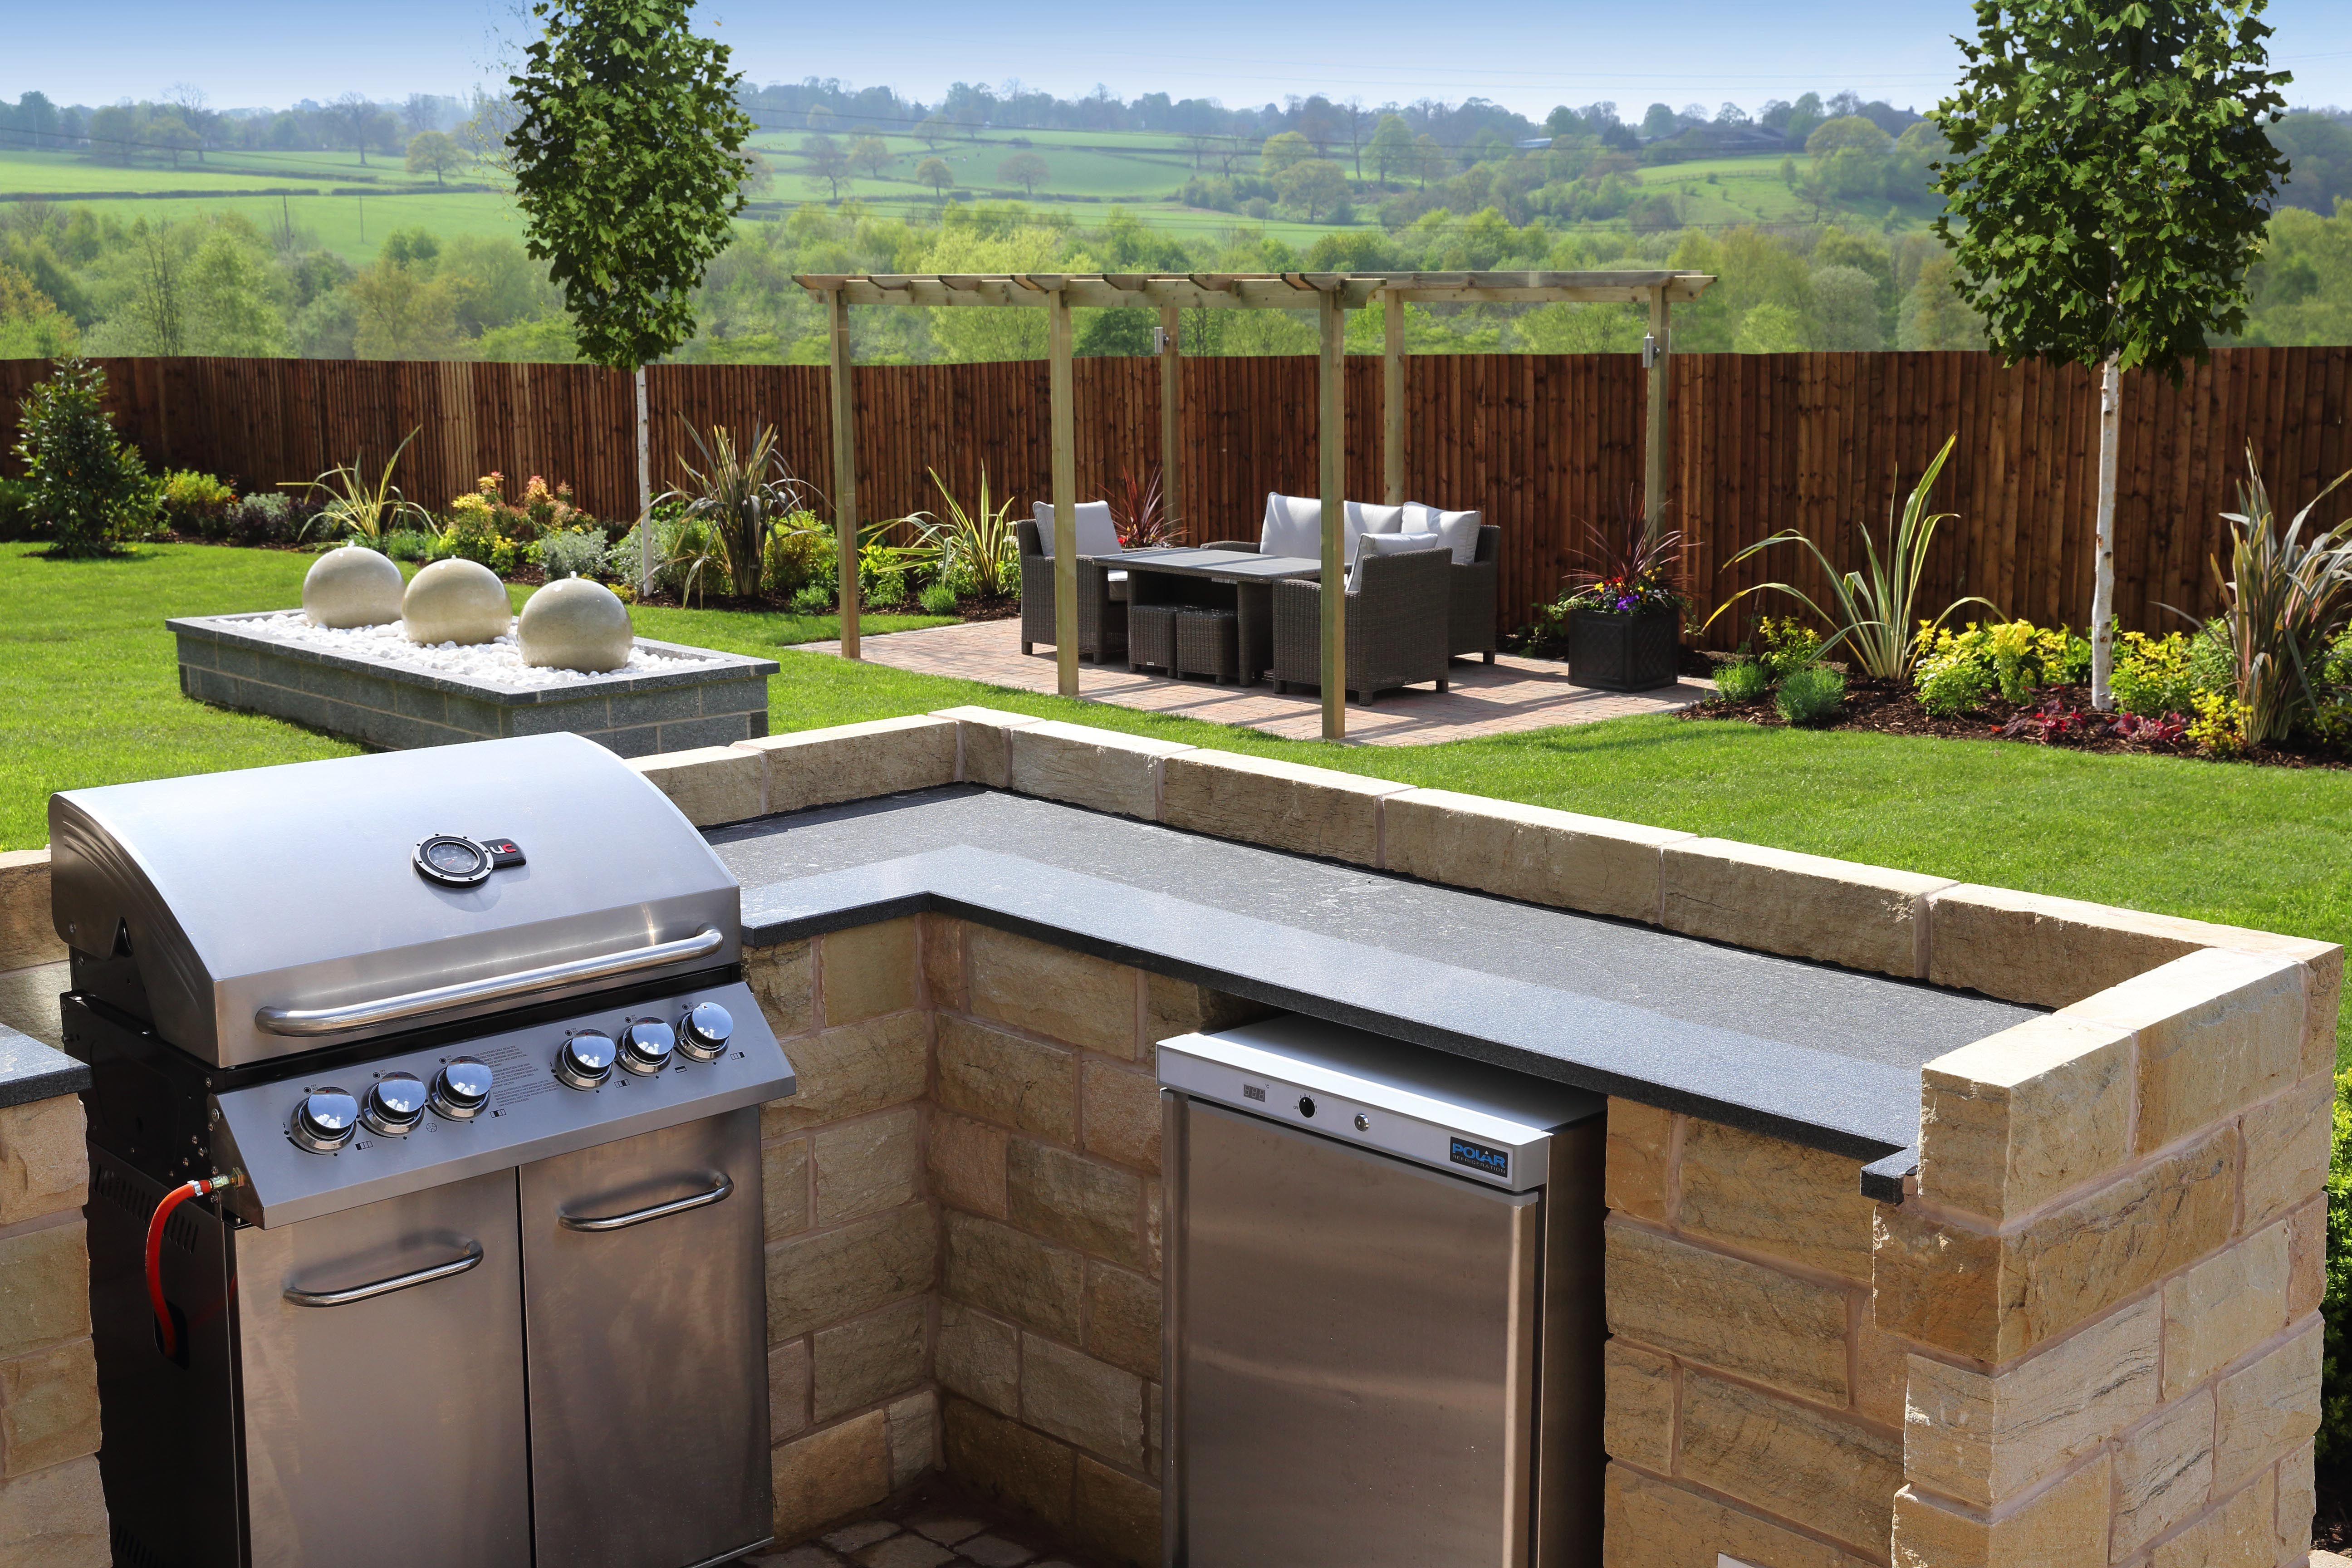 Complete Outdoor Kitchen Beautiful Outdoor Rooms Are Not Complete Without An Outdoor